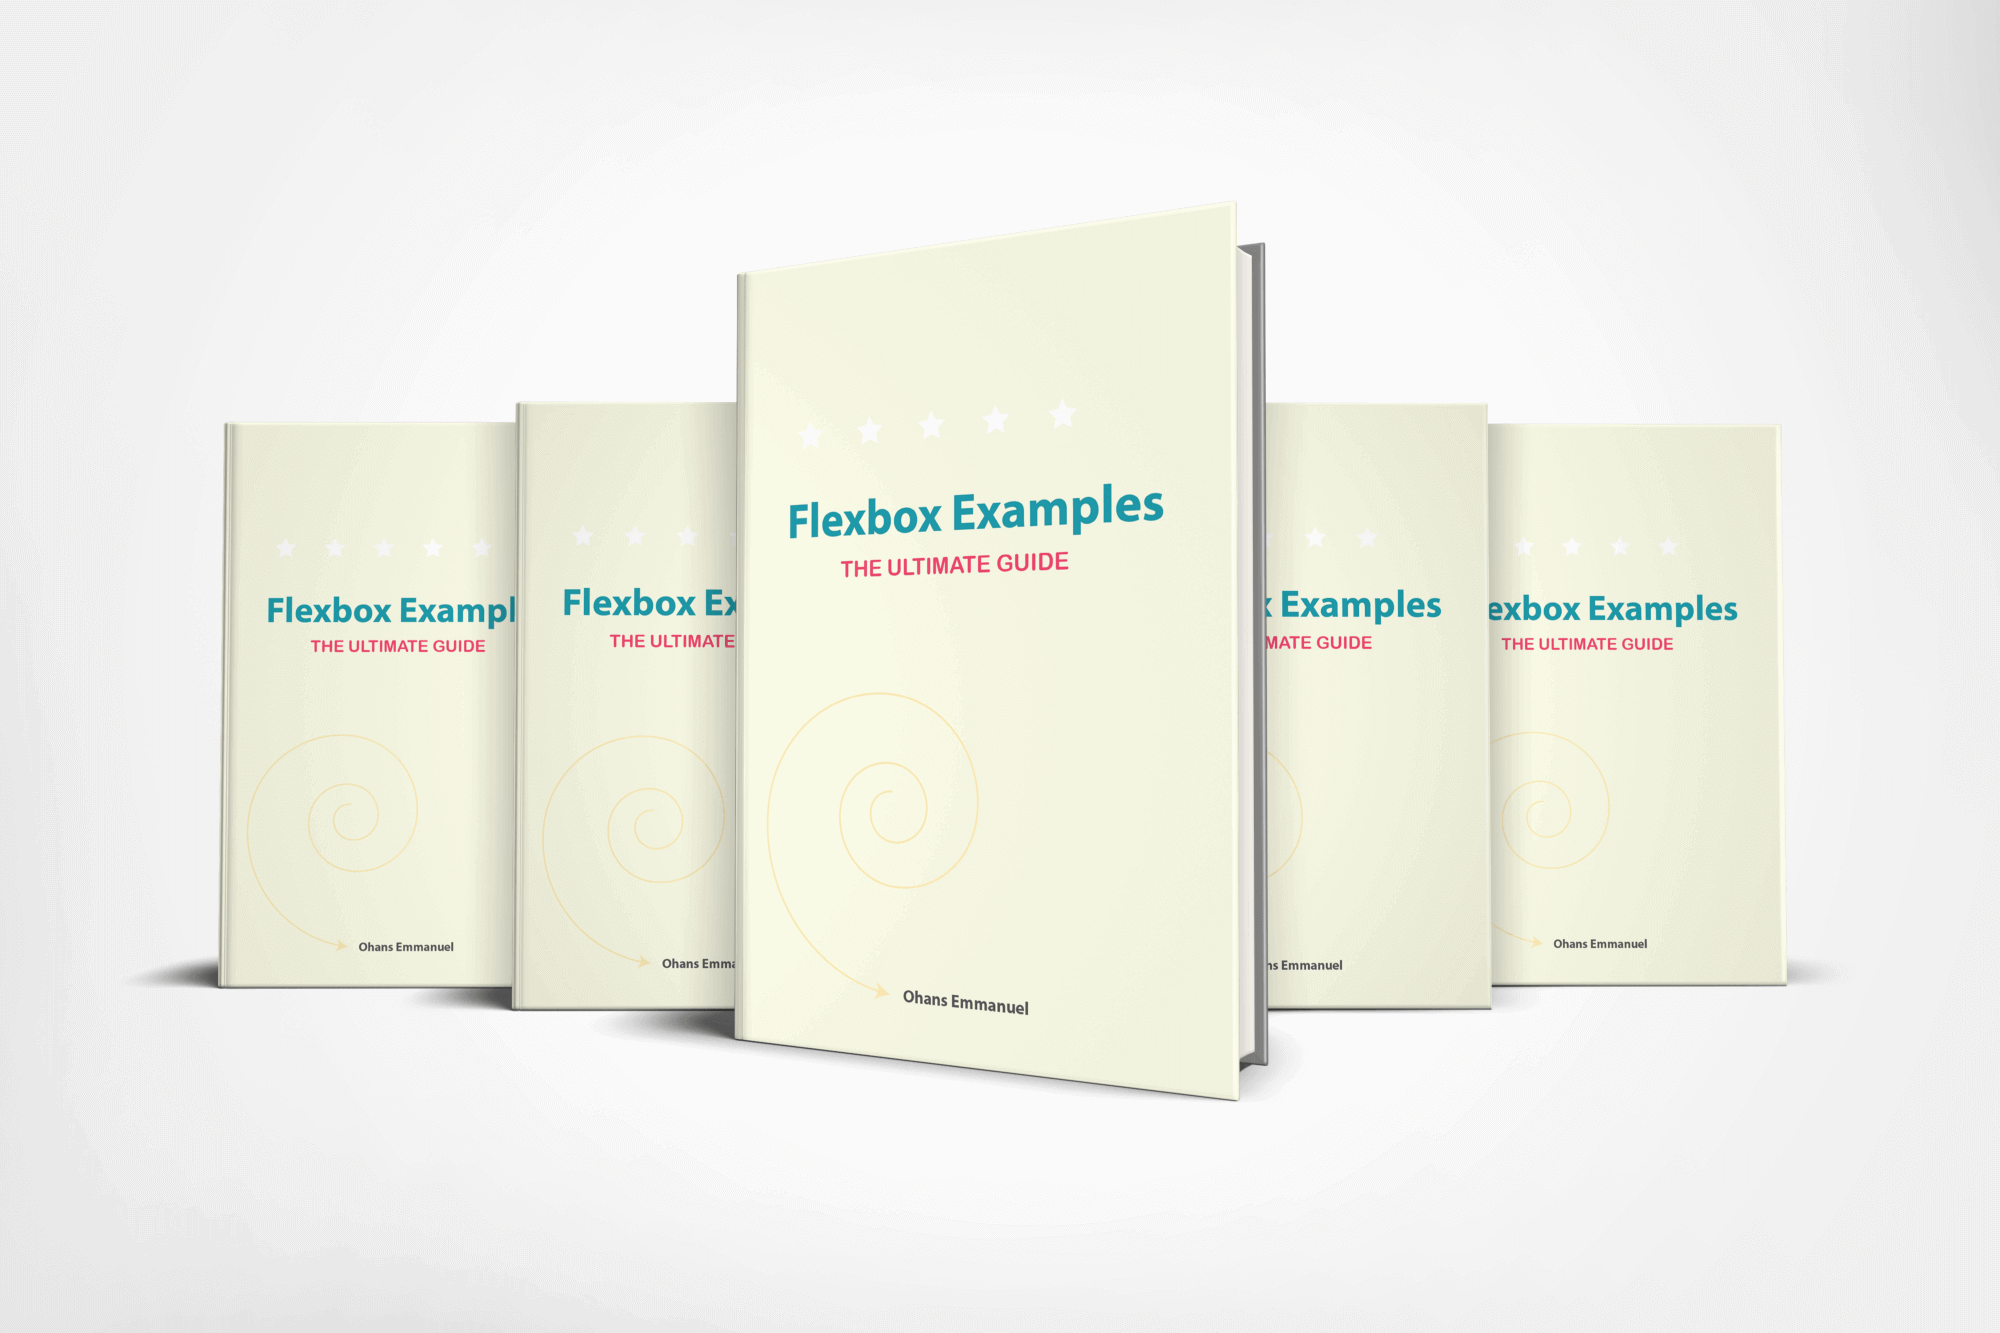 The Ultimate Guide To Flexbox Learning Through Examples